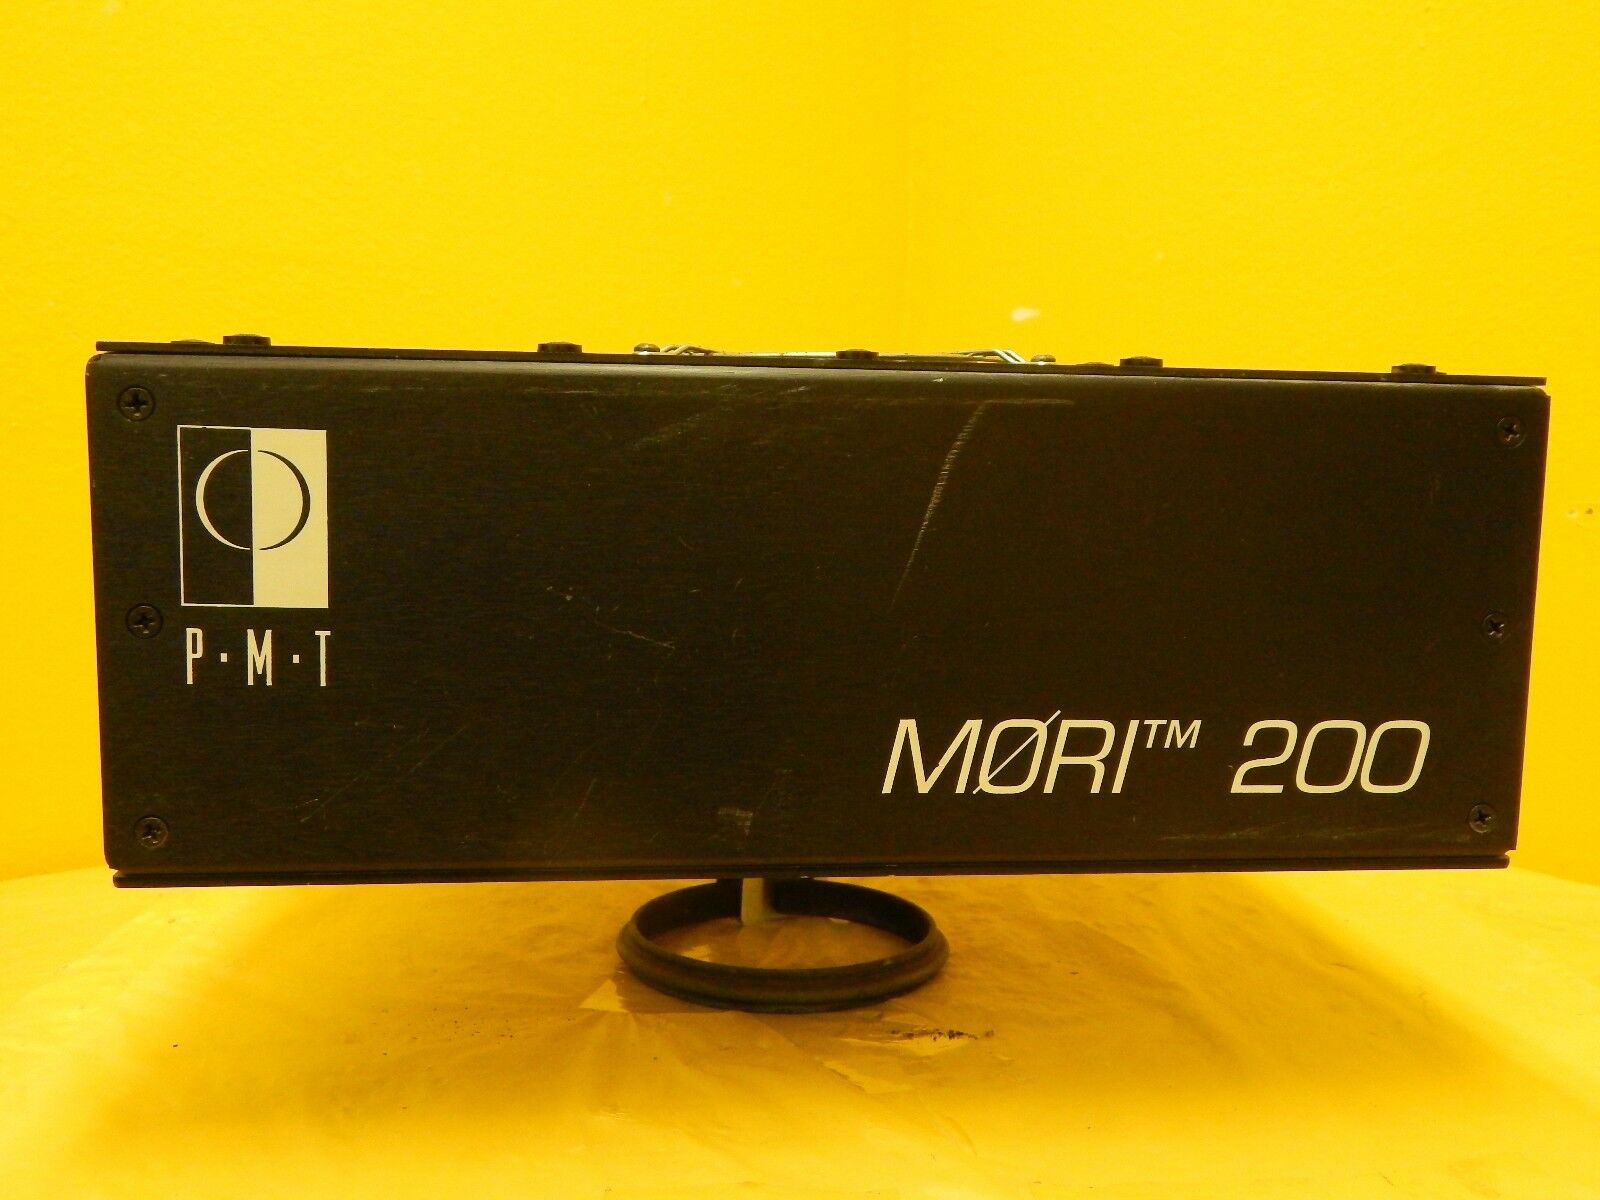 PMT MORI 200 RF-Driven Helicon Plasma Source 13.56 MHz Used Working